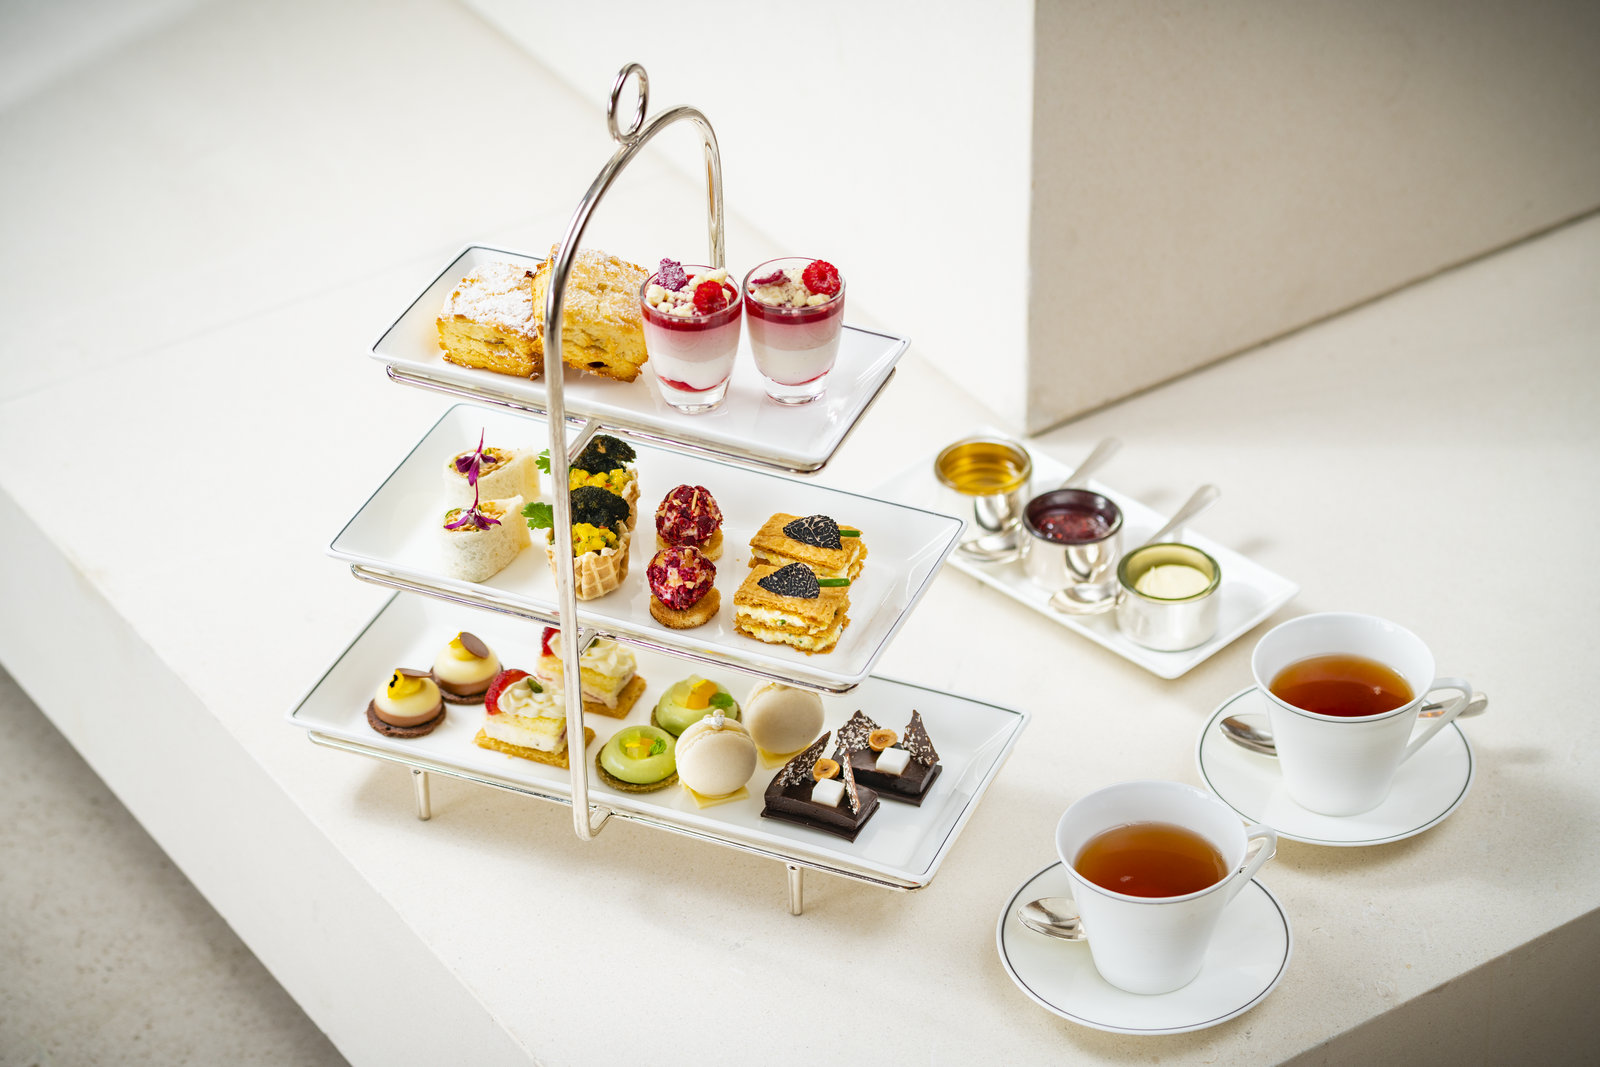 香港奕居Café Gray Deluxe推出時令英式下午茶并送出 Le Labo 禮物包 | Café Gray Deluxe Presents Seasonal Afternoon Tea With Le ...